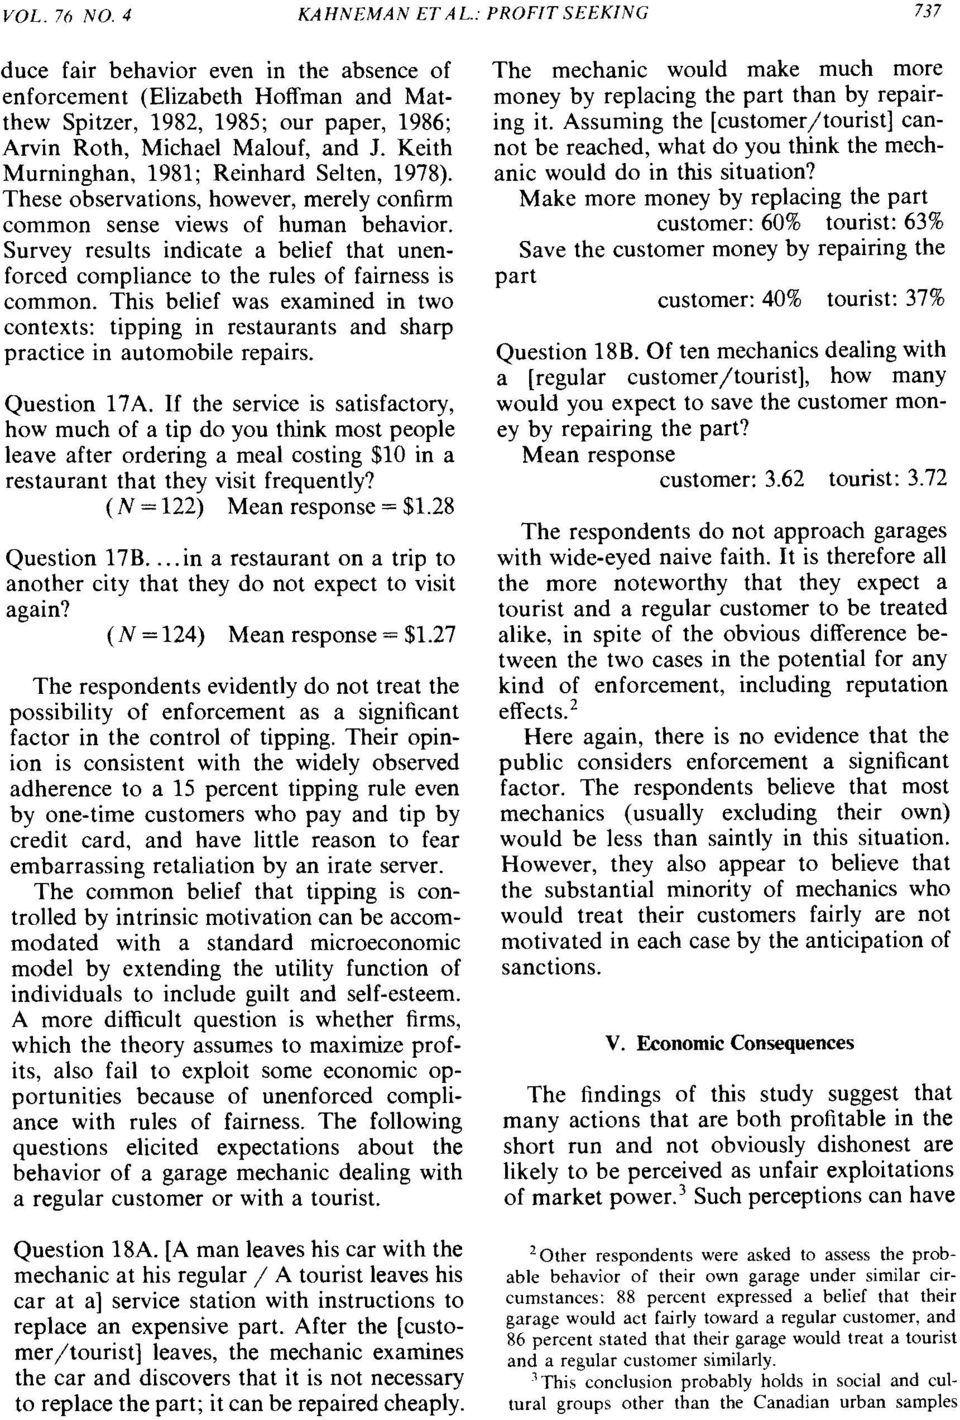 Keith Murninghan, 1981; Reinhard Selten, 1978). These observations, however, merely confirm common sense views of human behavior.